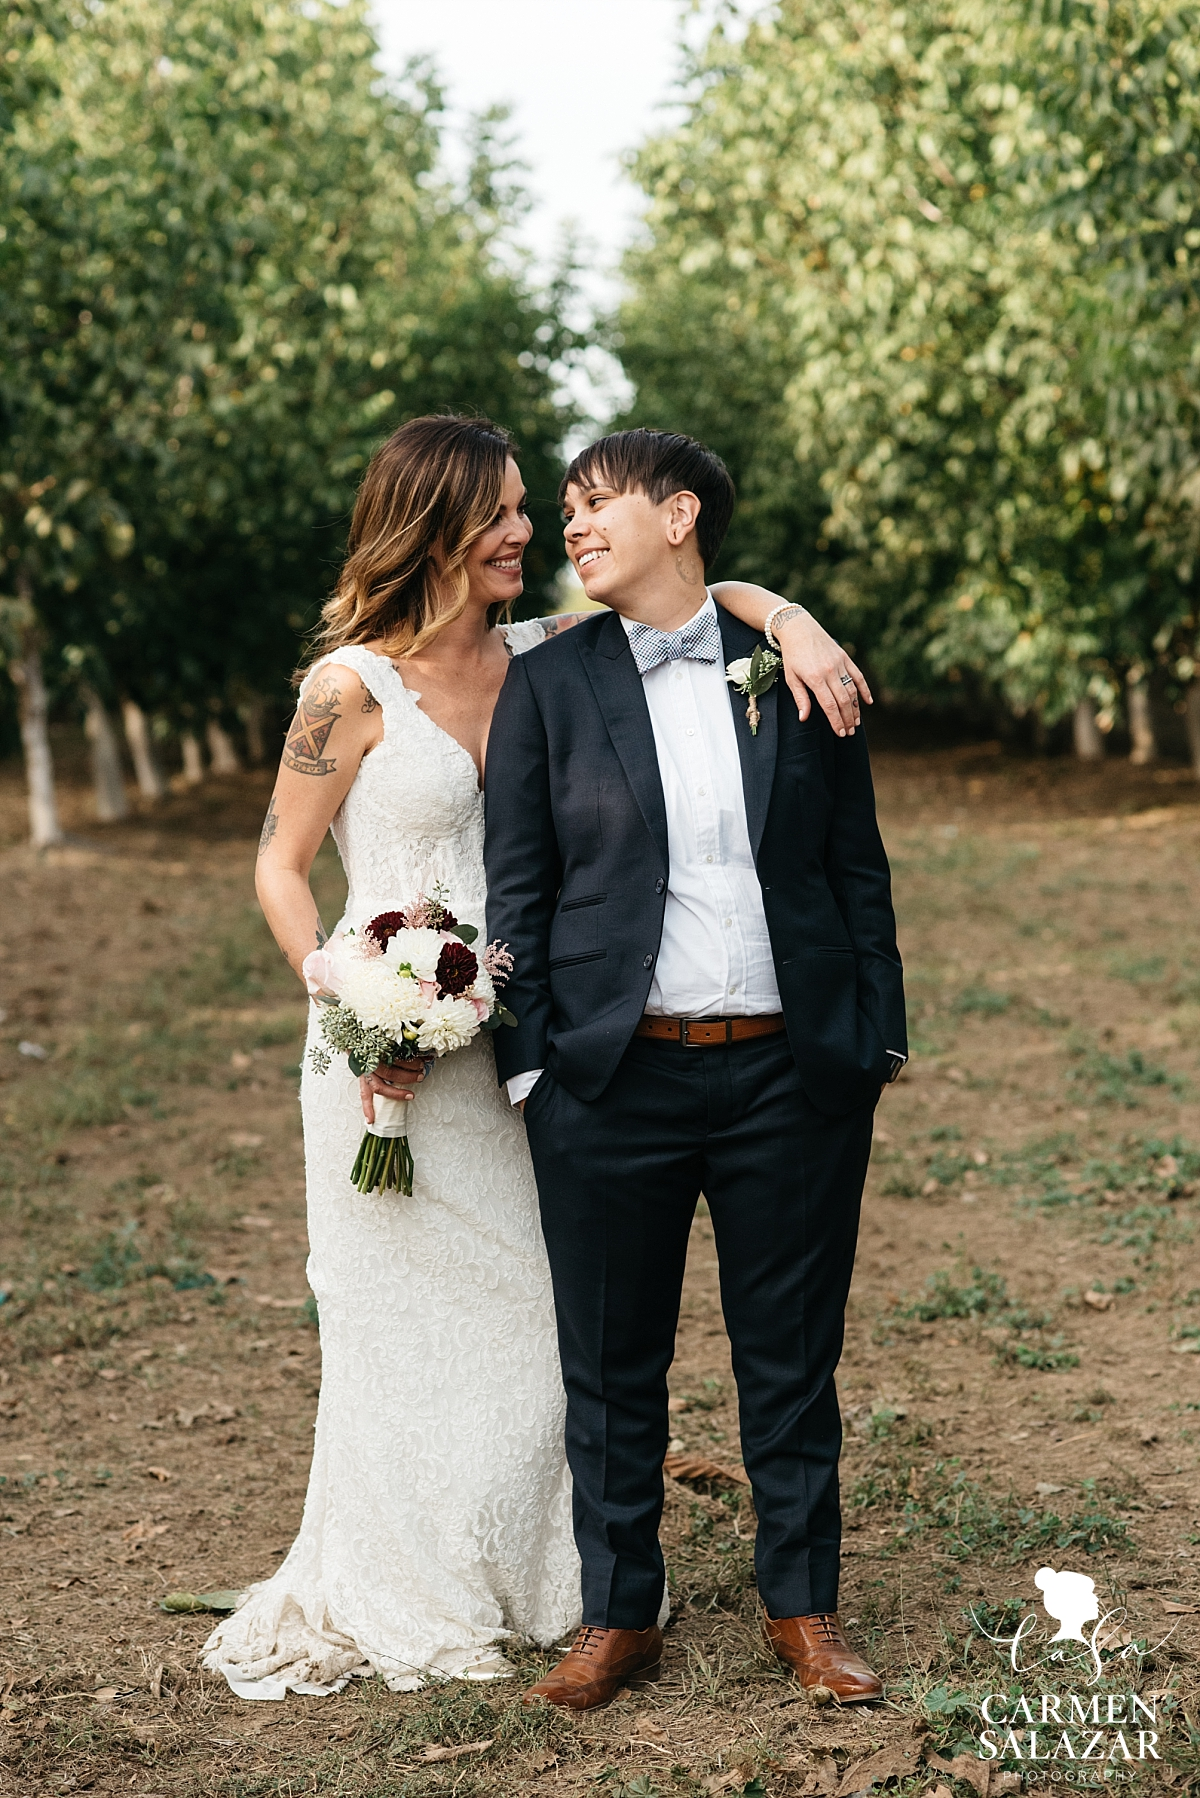 California same sex wedding style inspiration - Carmen Salazar